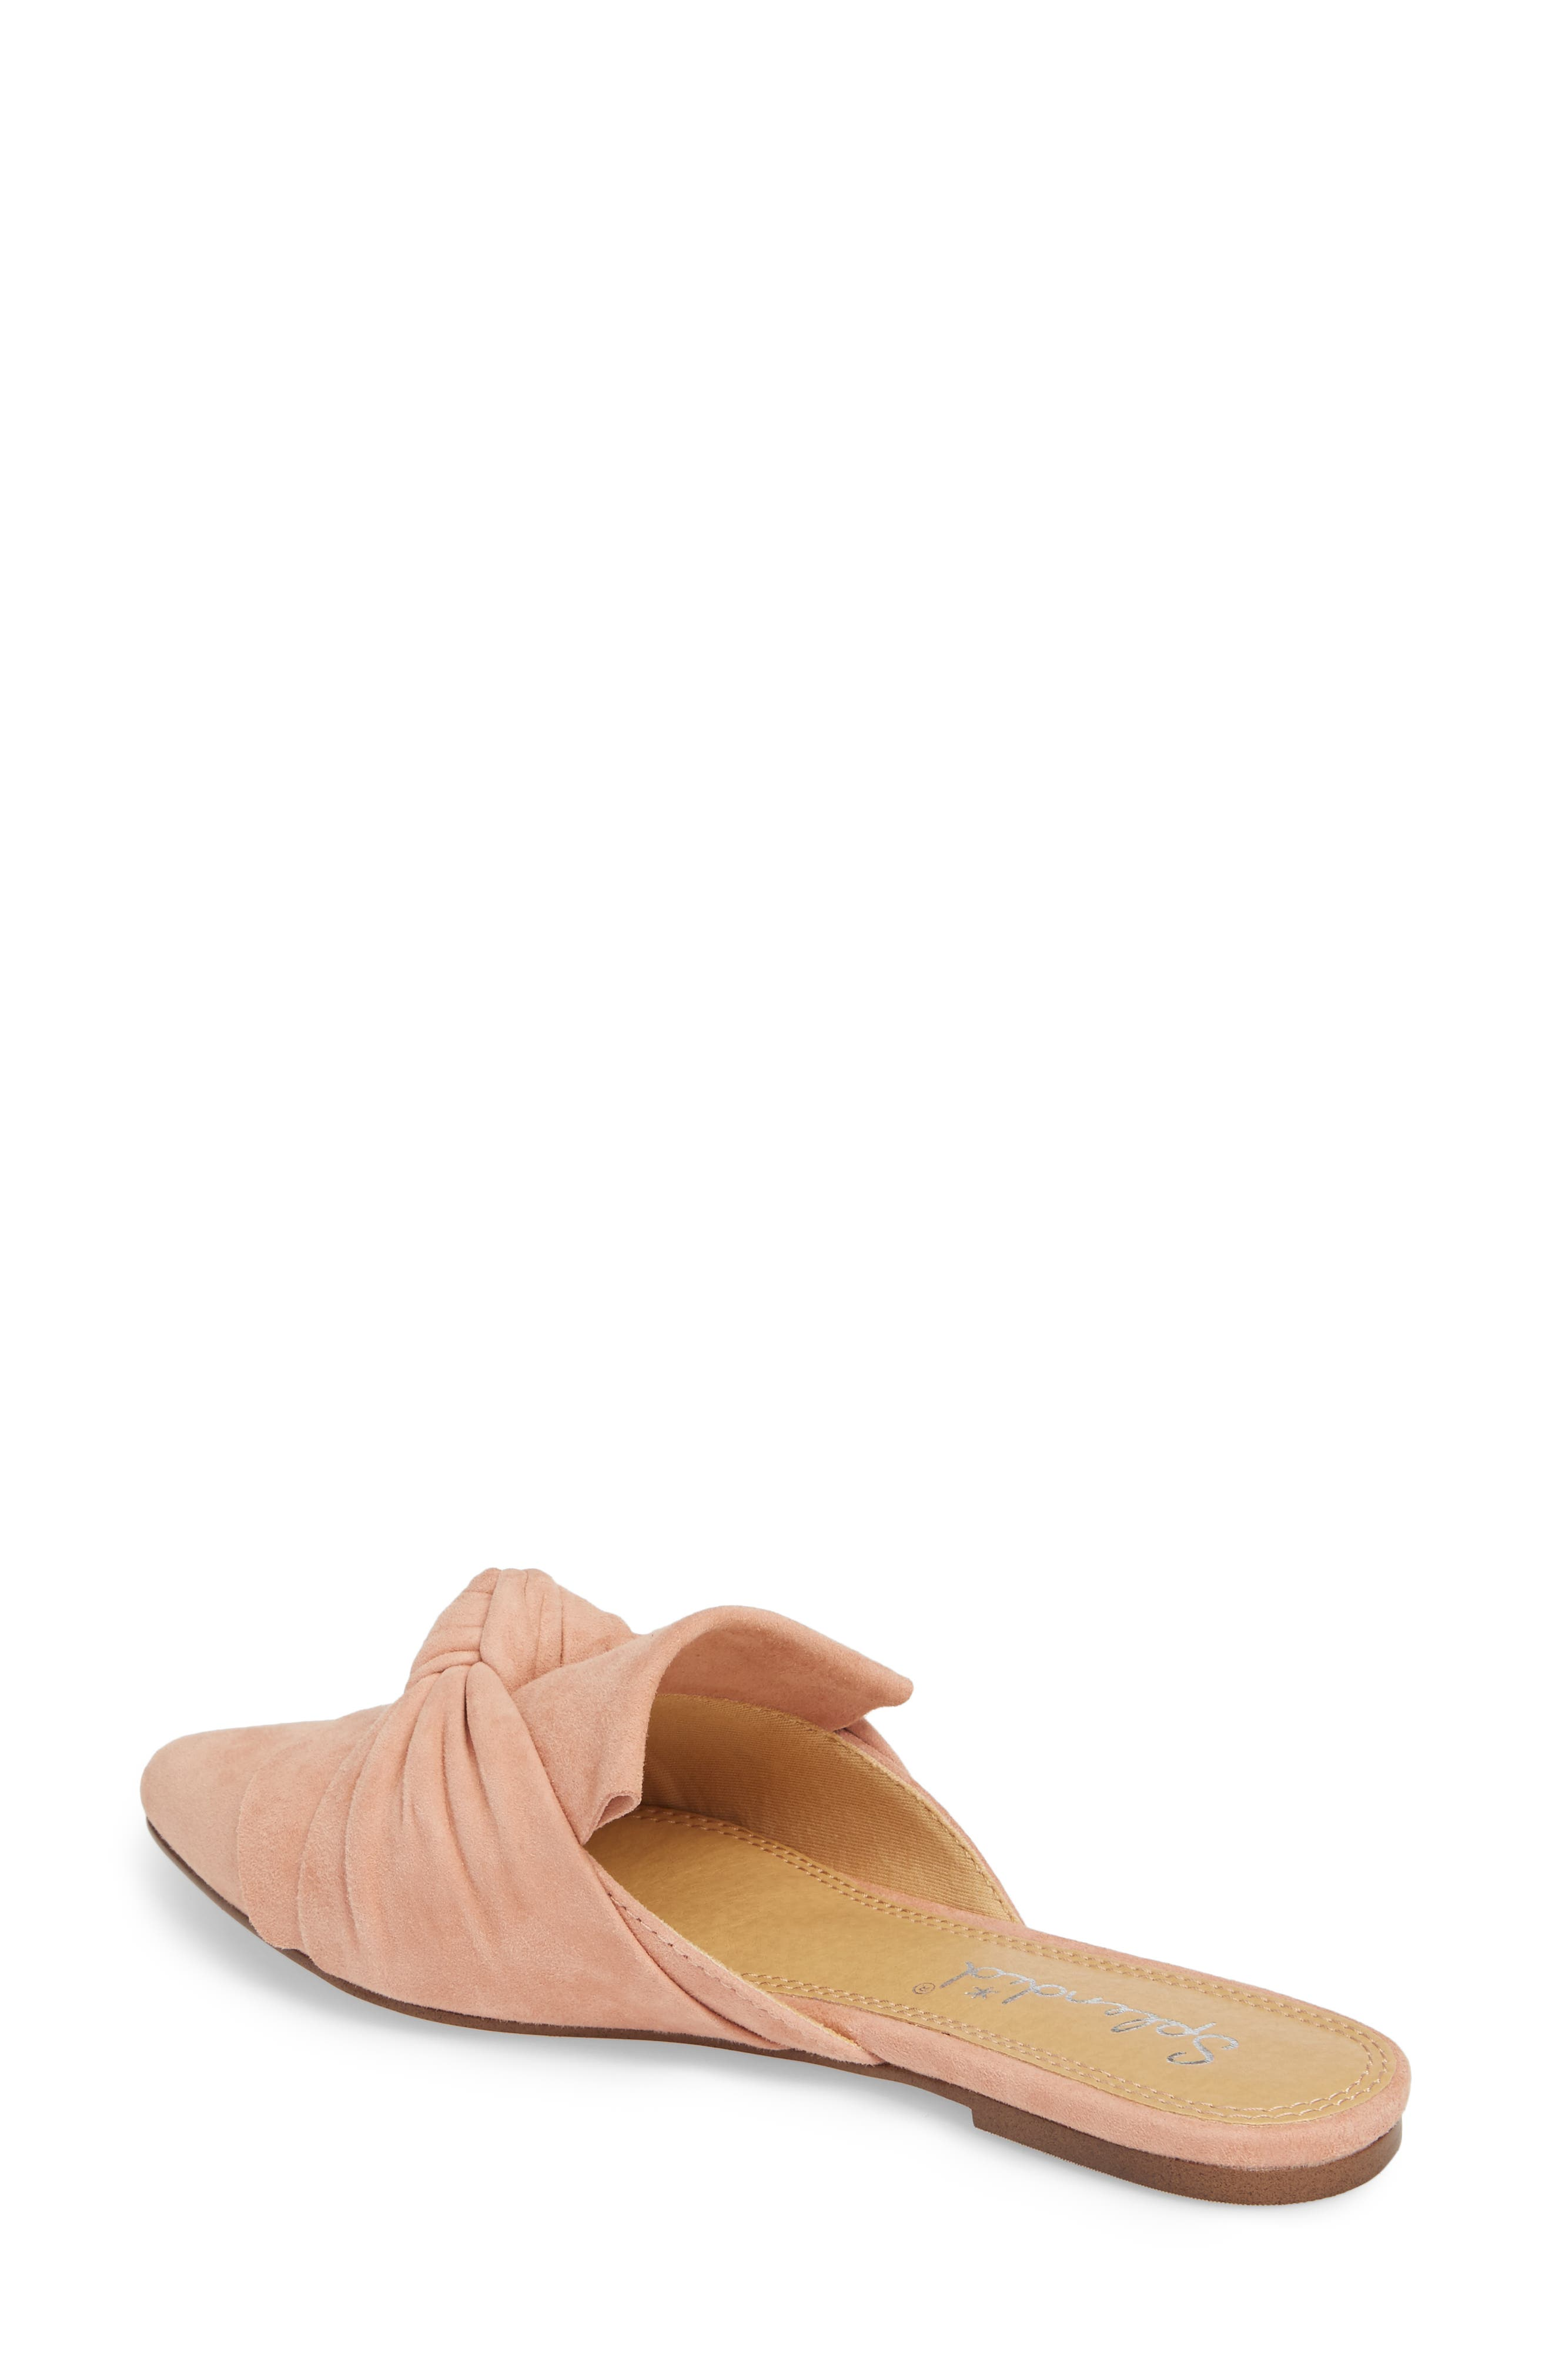 Bassett Knotted Pointy Toe Mule,                             Alternate thumbnail 6, color,